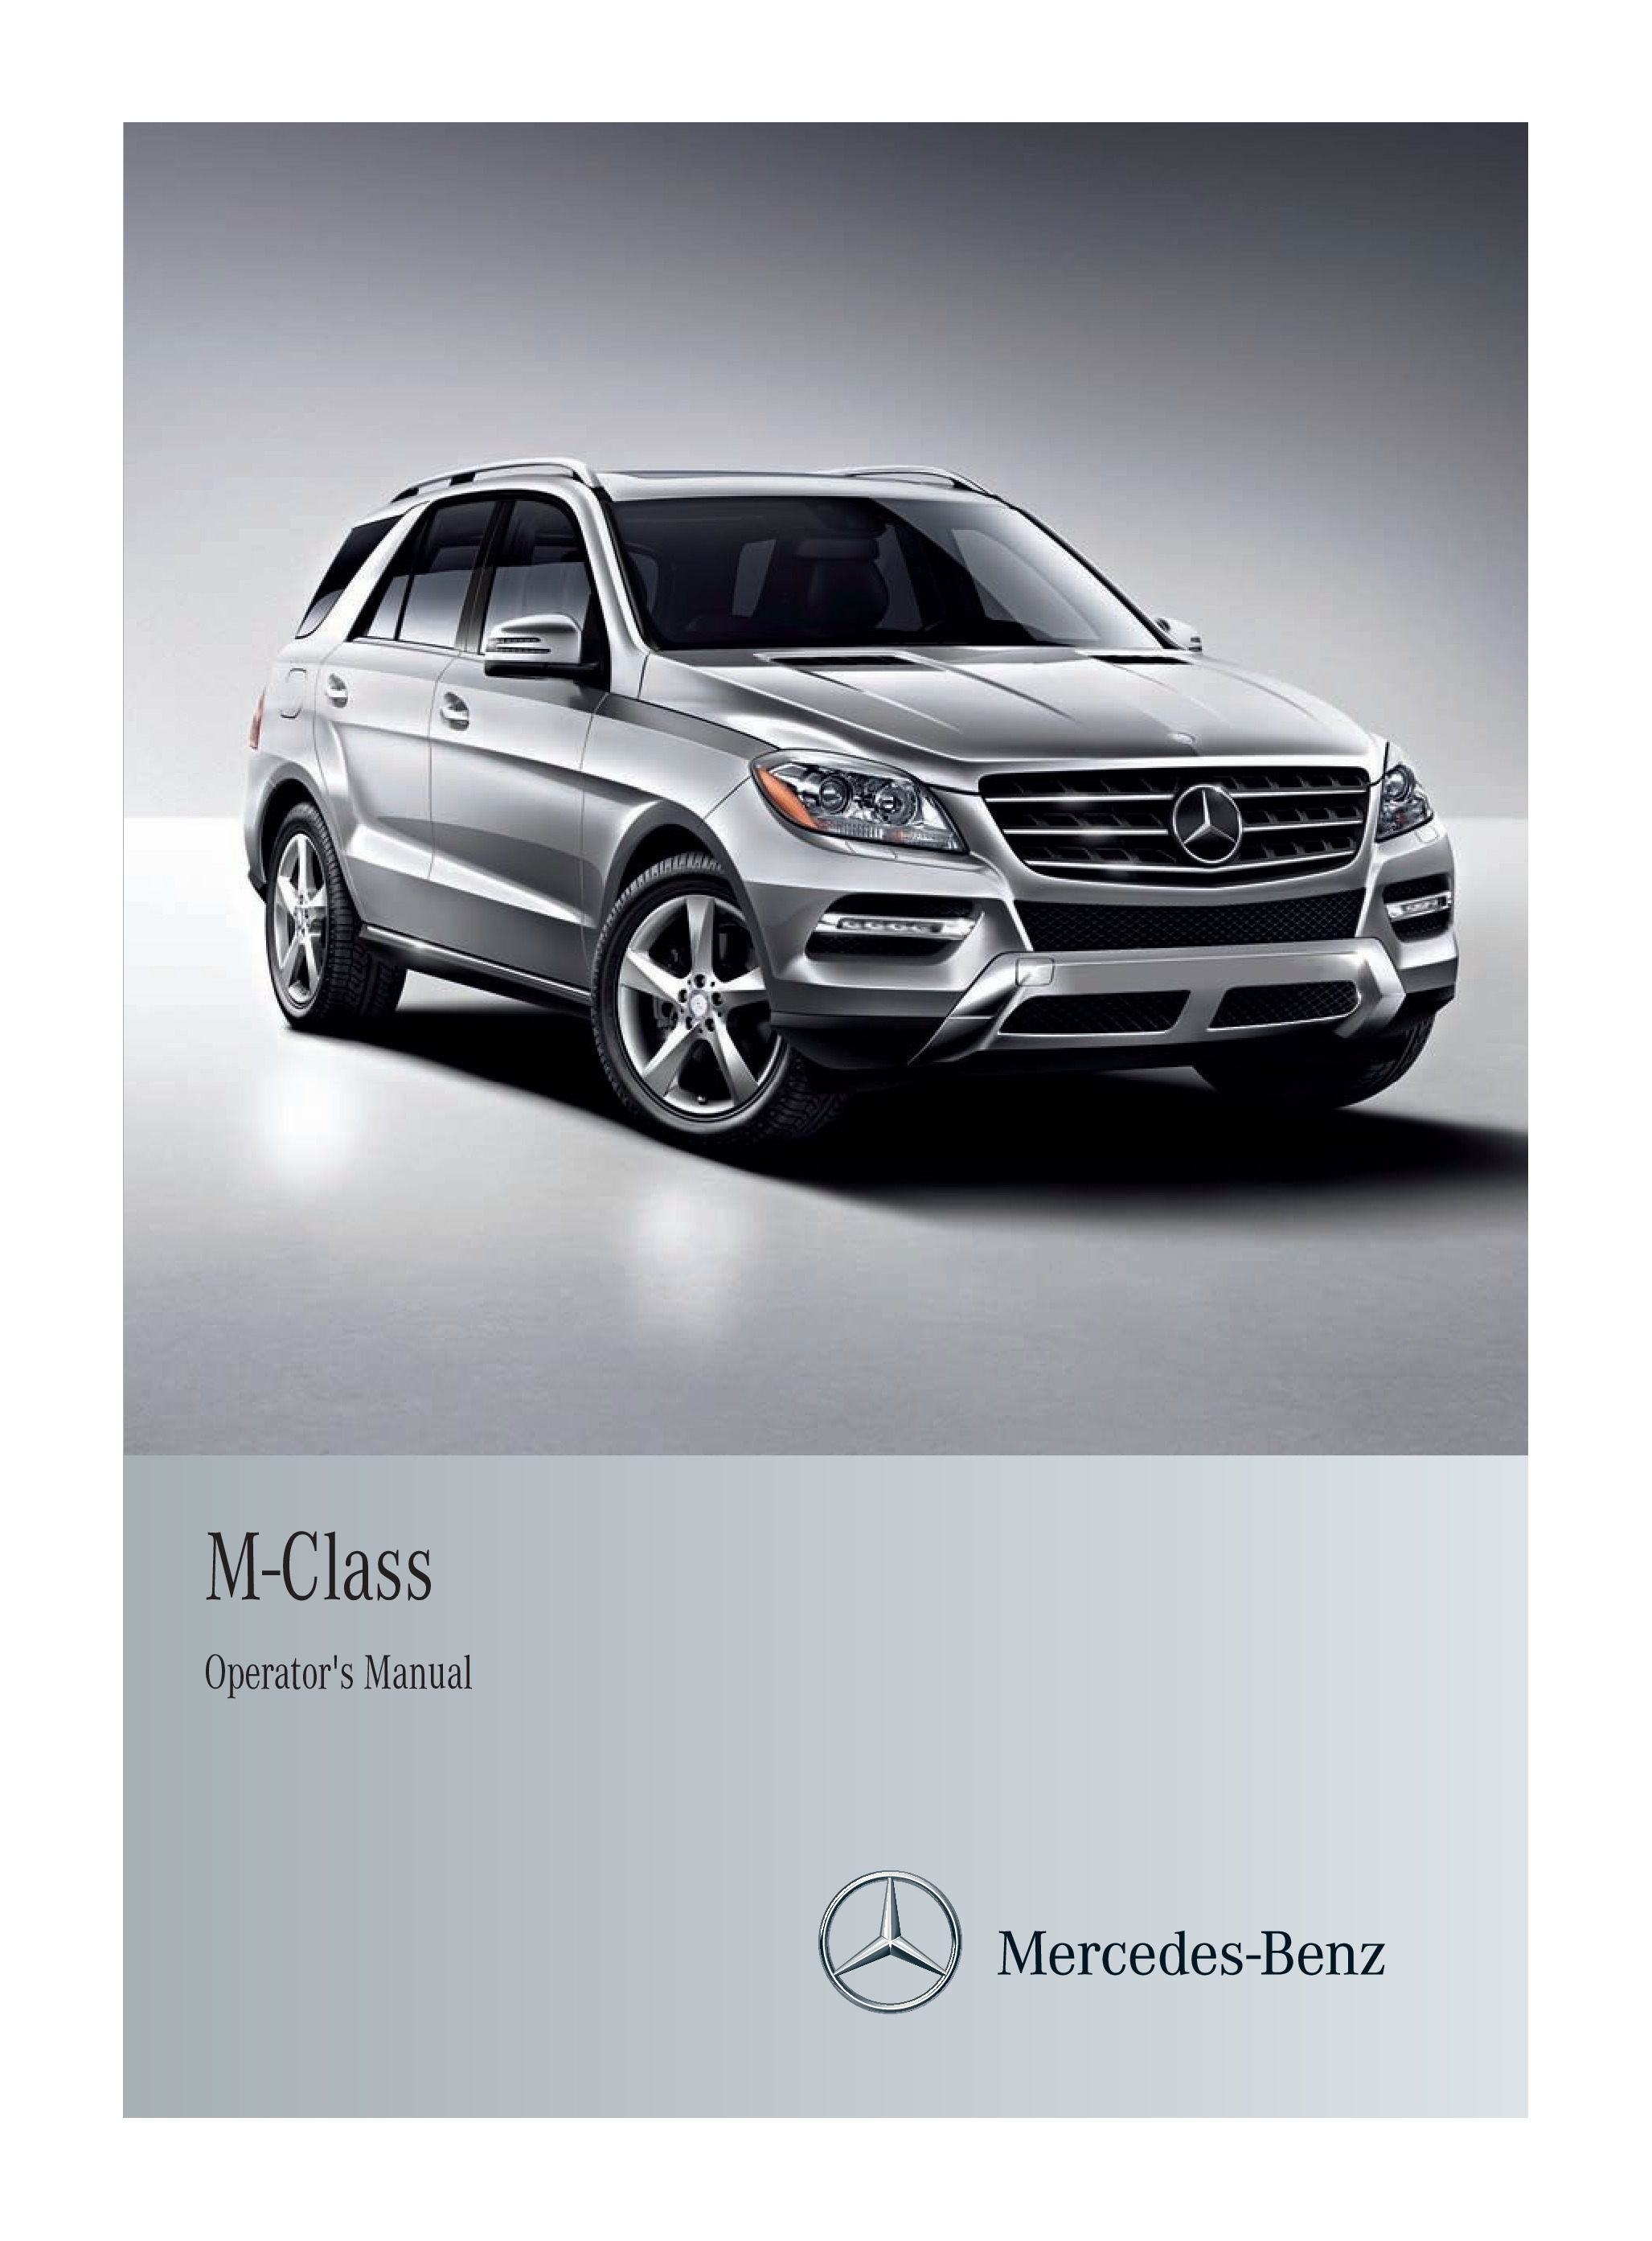 2012 Mercedes-Benz M Class owners manual